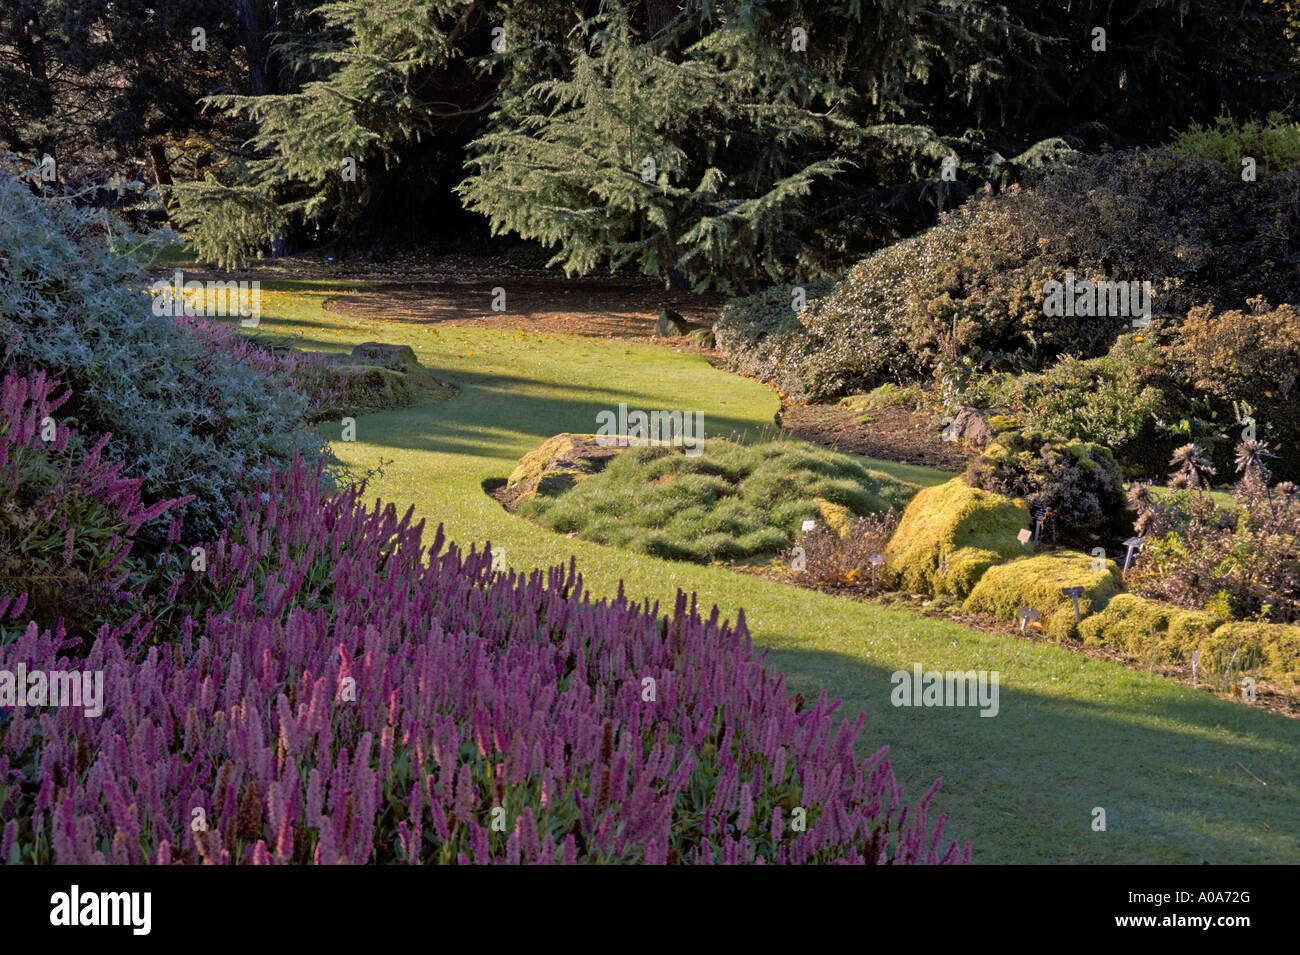 Japanese Rock Garden Royal Botanic Garden Edinburgh Inverleith Autumn colours - Stock Image